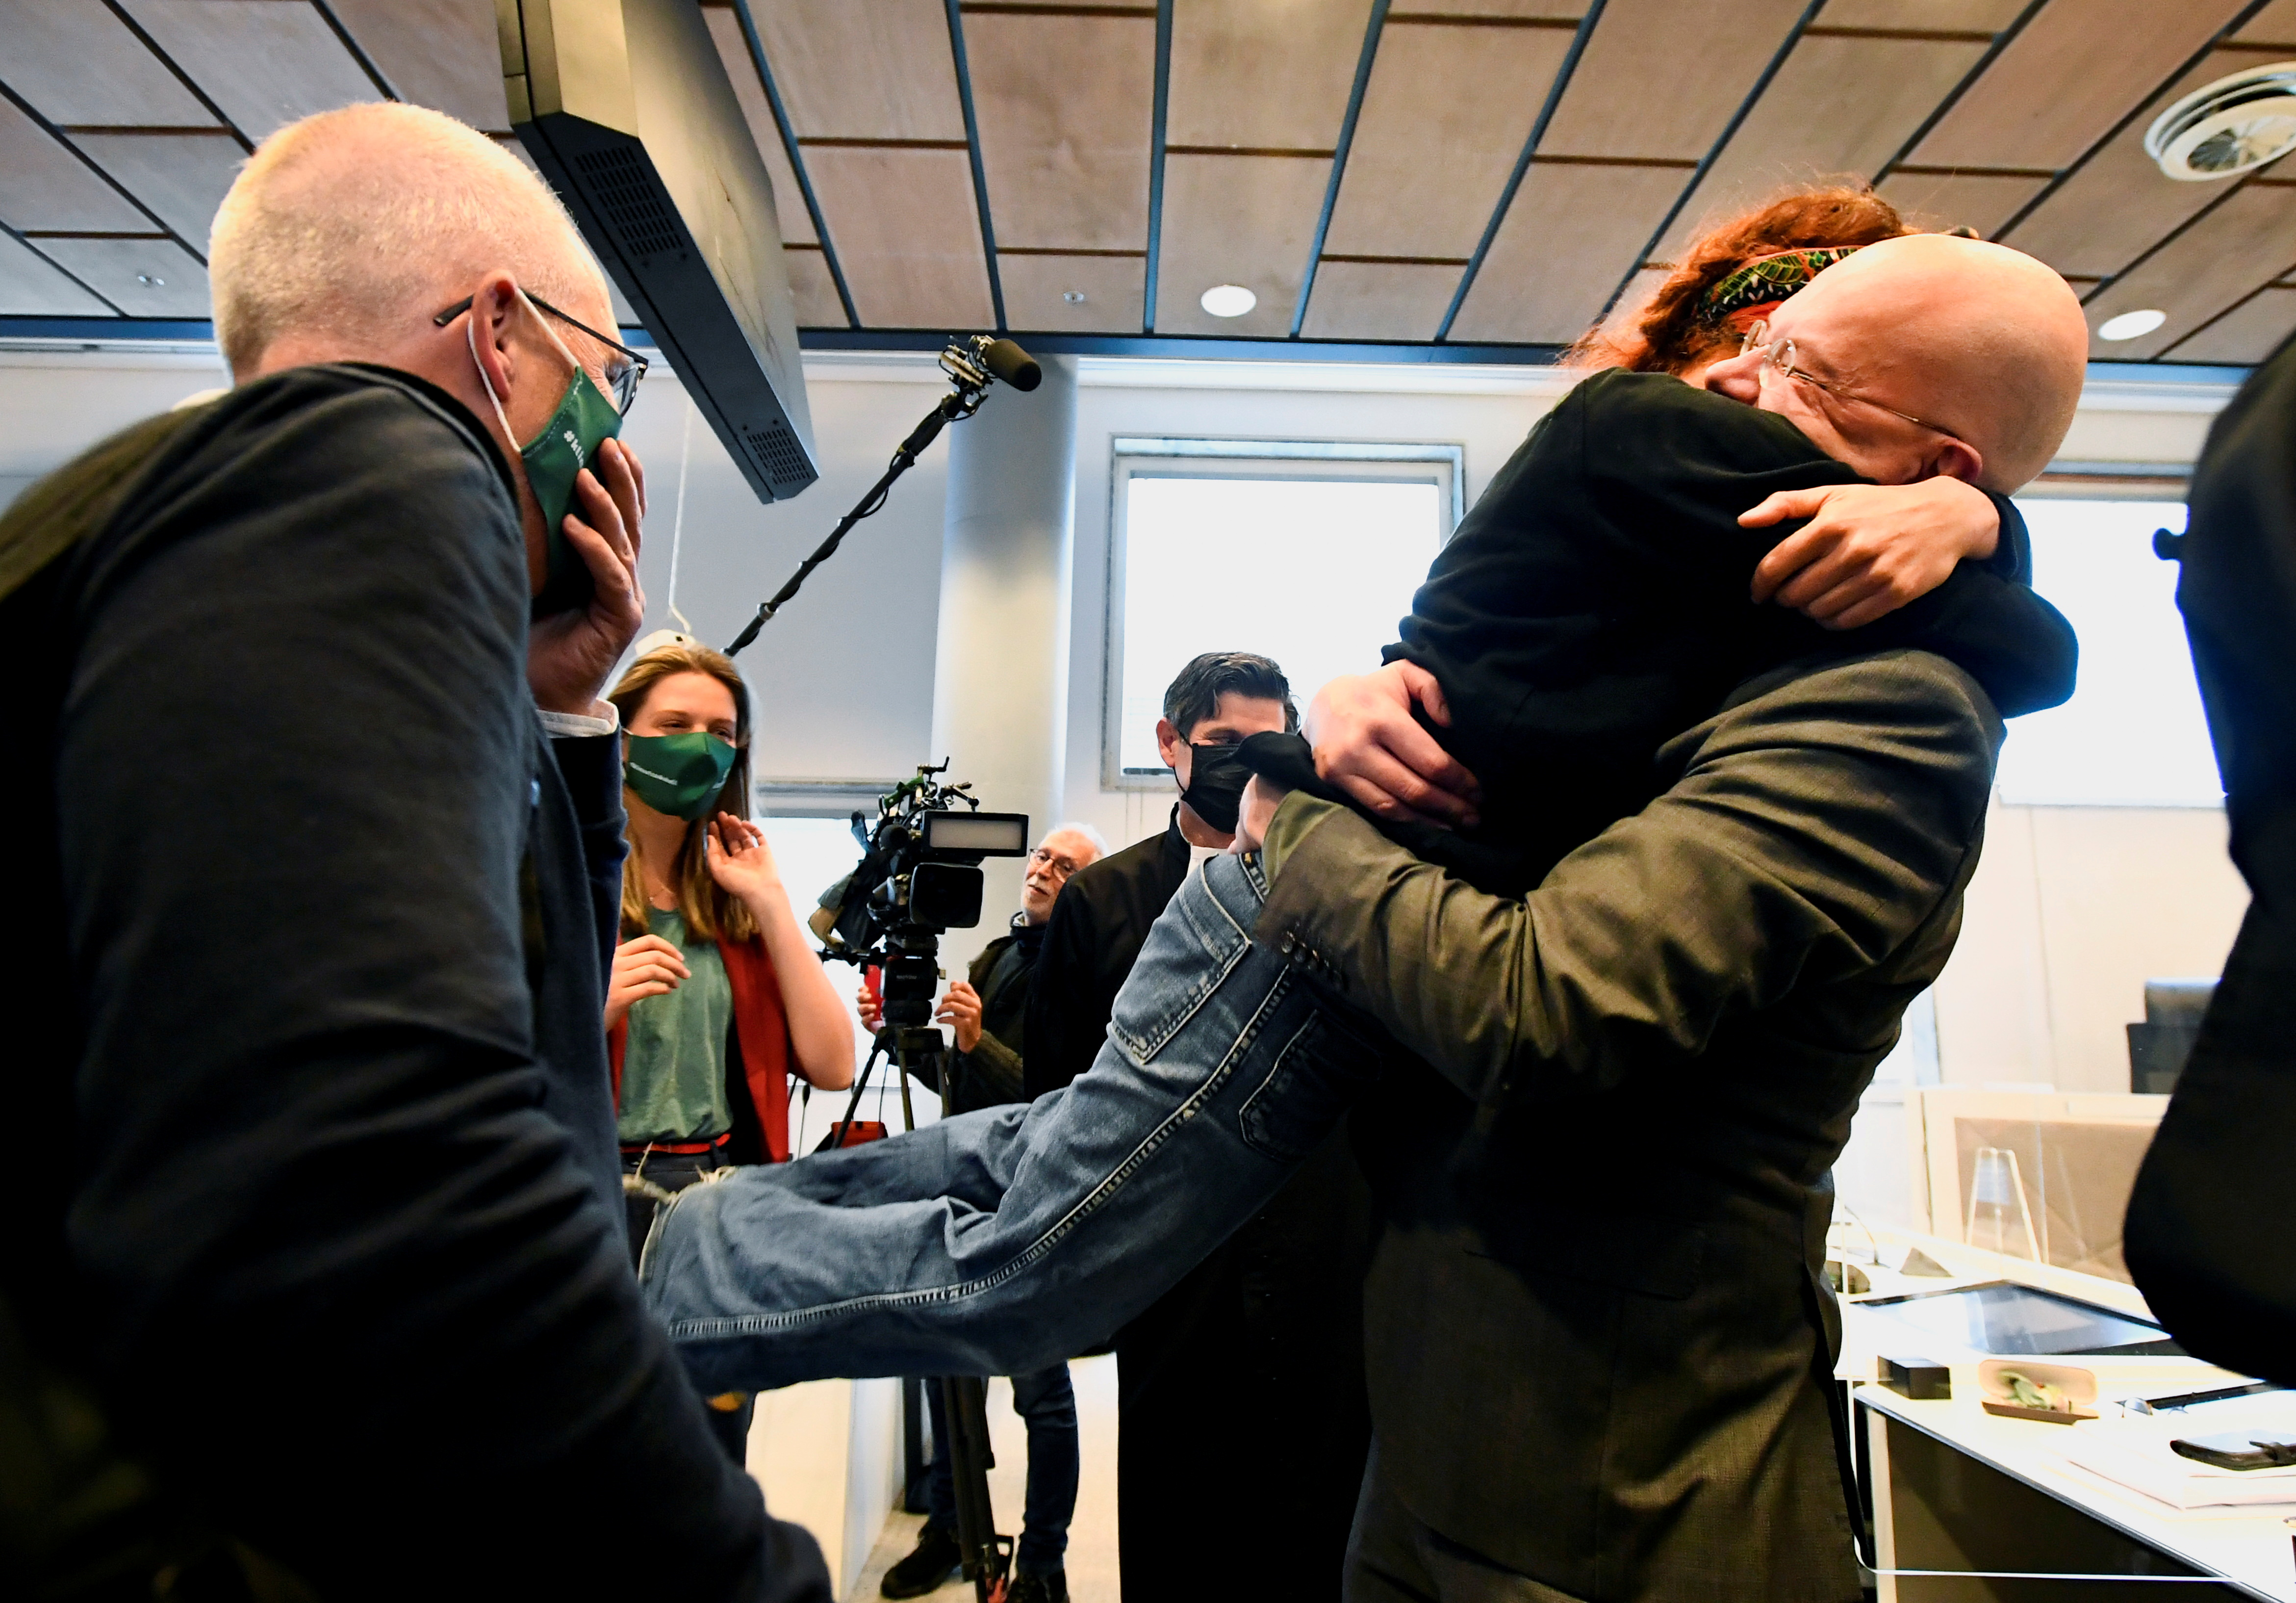 Donald Pols, Director of Milieudefensie (Friends of the Earth),  hugs Hilde Brontsema, as they react after a verdict in a case brought on against Shell by environmentalist and human rights groups, including Greenpeace and Friends of the Earth, who demand the energy firm to cut its reliance on fossil fuels, in The Hague, Netherlands, May 26, 2021. REUTERS/Piroschka van de Wouw